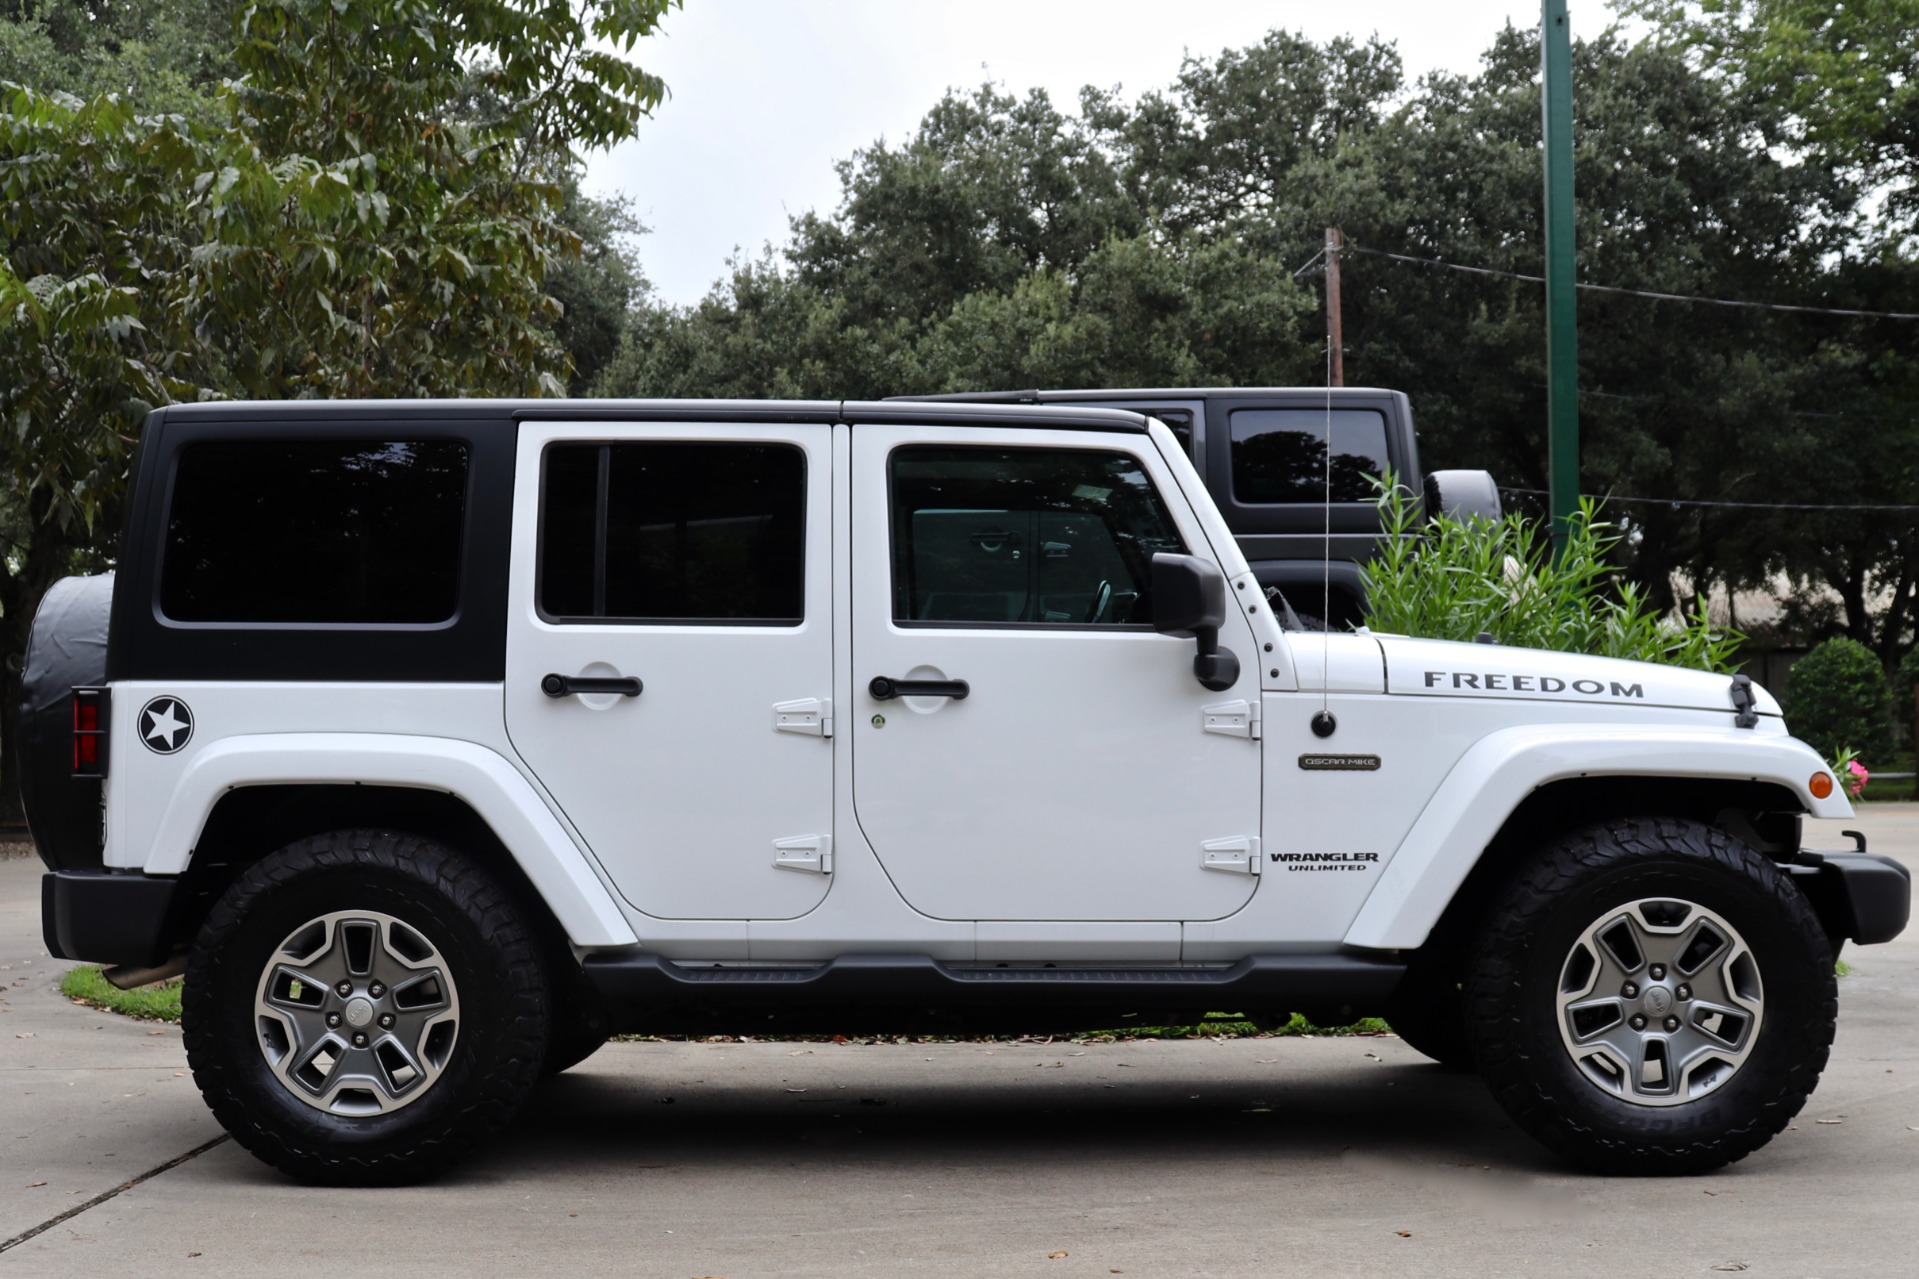 Used-2017-Jeep-Wrangler-Unlimited-Freedom